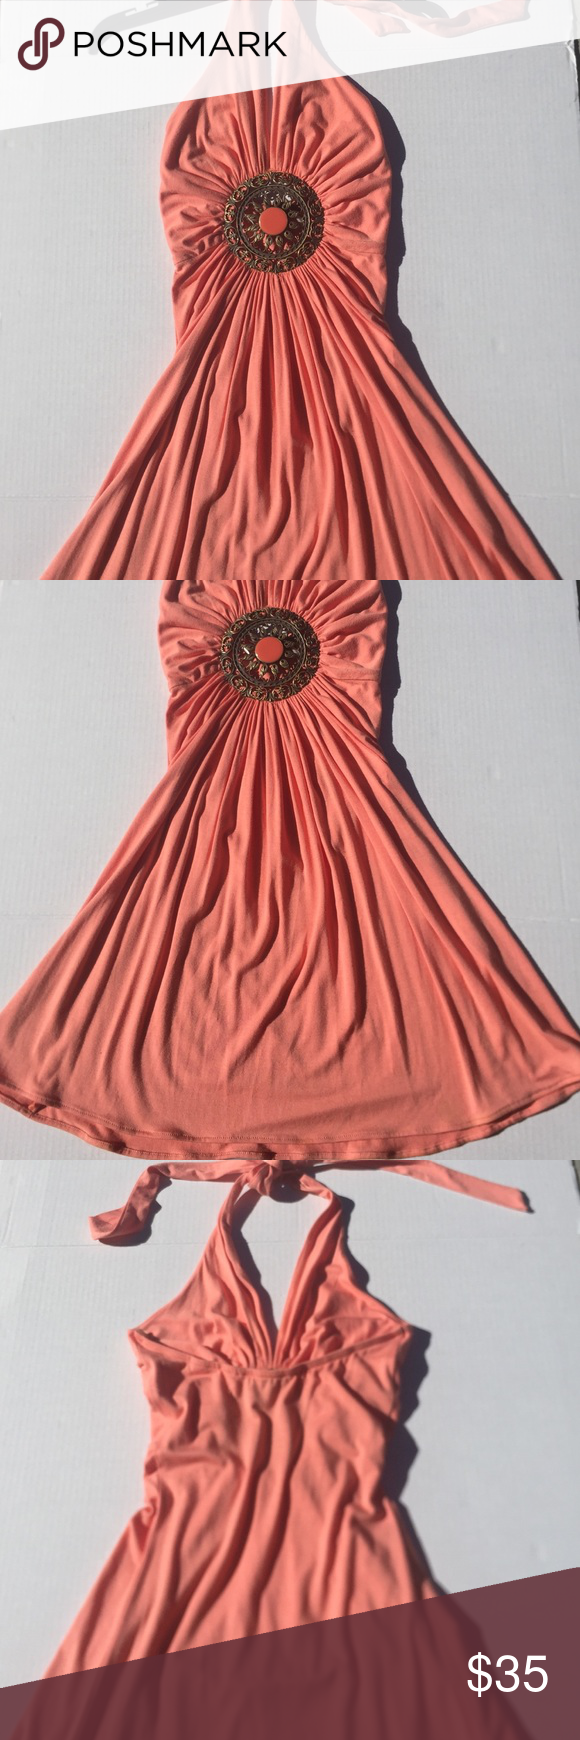 """Sky Dress Sky Halter/Backless Dress. Centered Medallion . Lightly preworn. Beautiful with lots of life. Measured from halter tie to bottom front dress is approx 35""""( as shown) sky Dresses"""